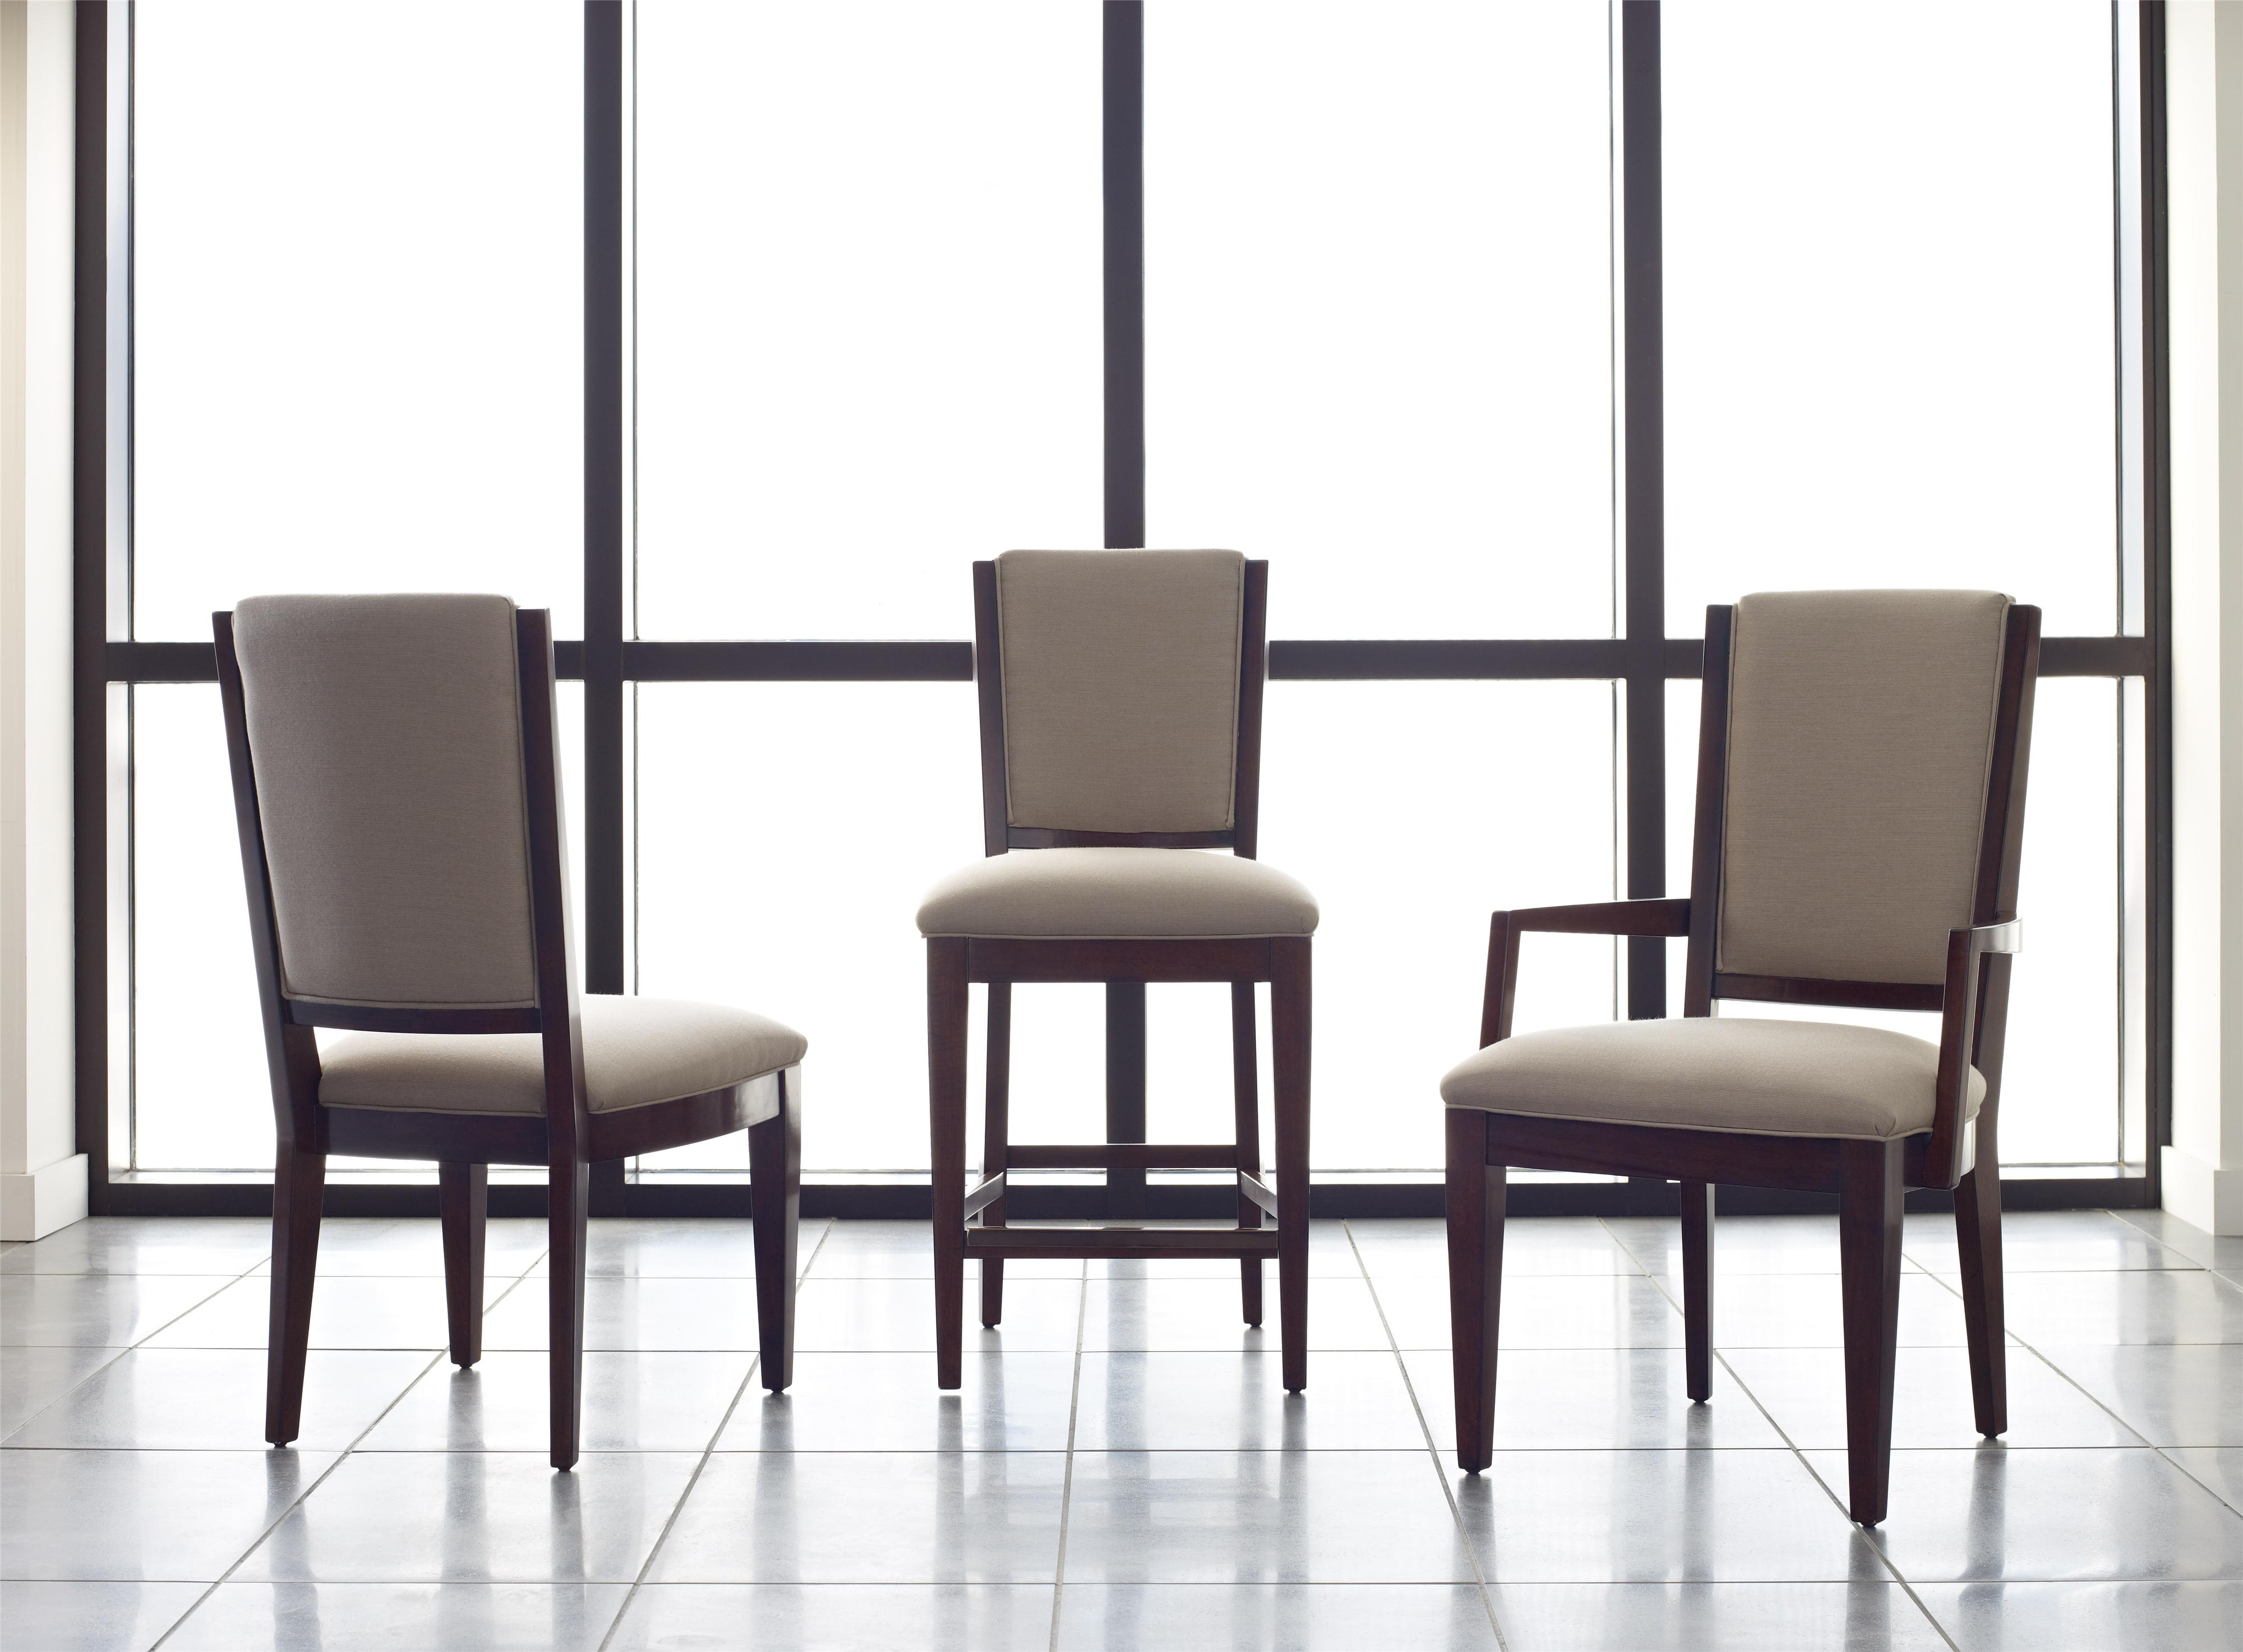 Transitional Spectrum Counter Height Chair With Performance Fabric Upholstery By Kincaid